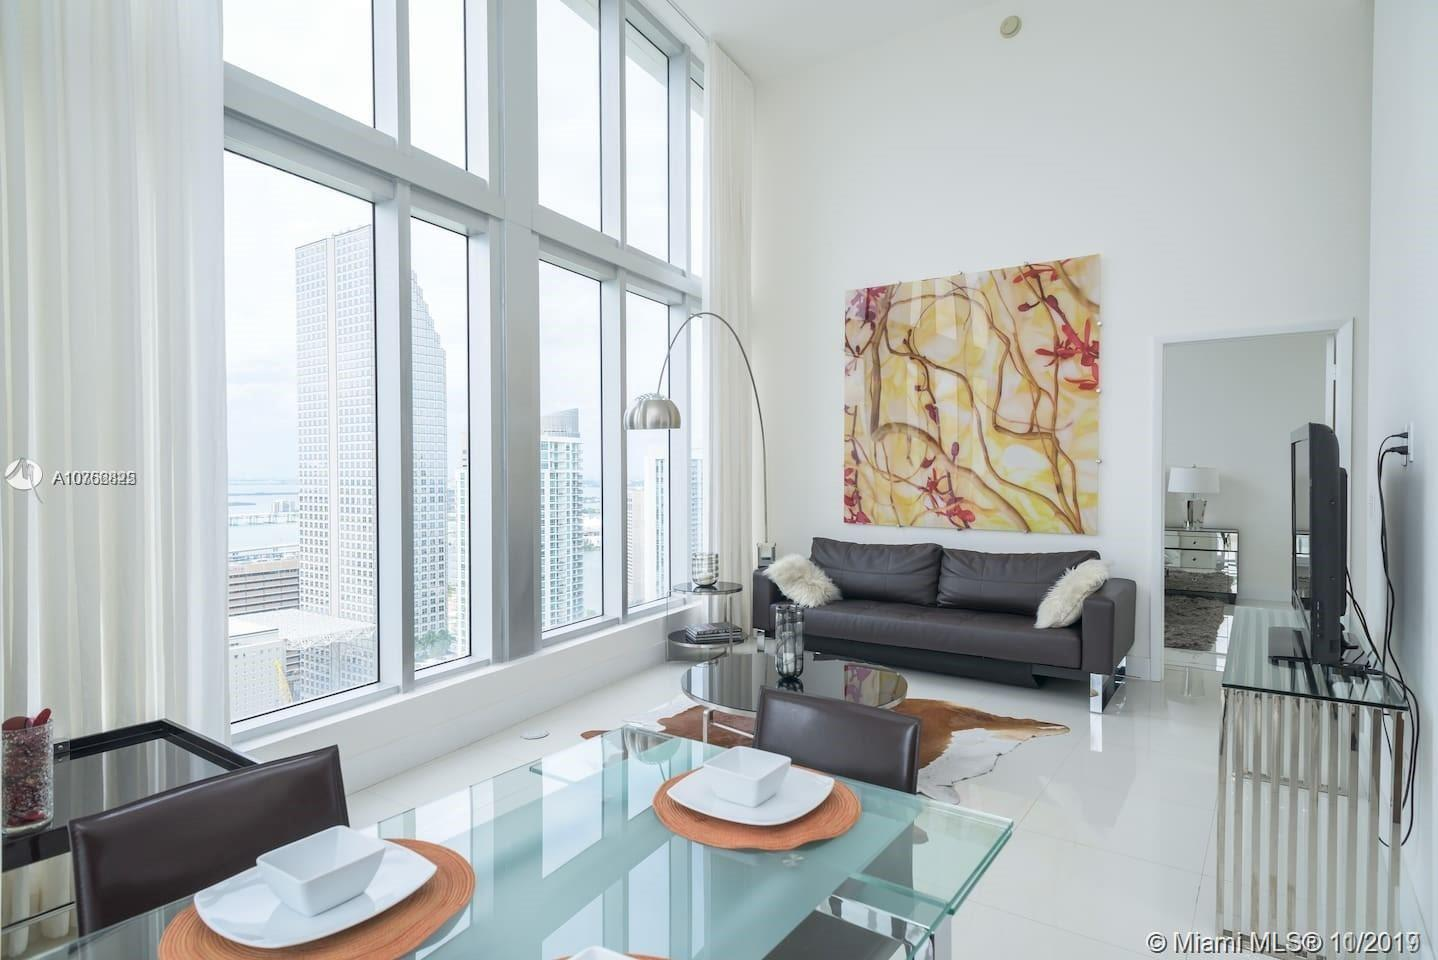 Rented until Dec.1, 2021  16FT Ceilings & incredible views!! Fully furnished by Tui Lifestyle, Top-of-the-line appliances, curtains throughout & blackout blinds in the bedrooms, move-in ready. Short term possible. Text agent for pricing and showings